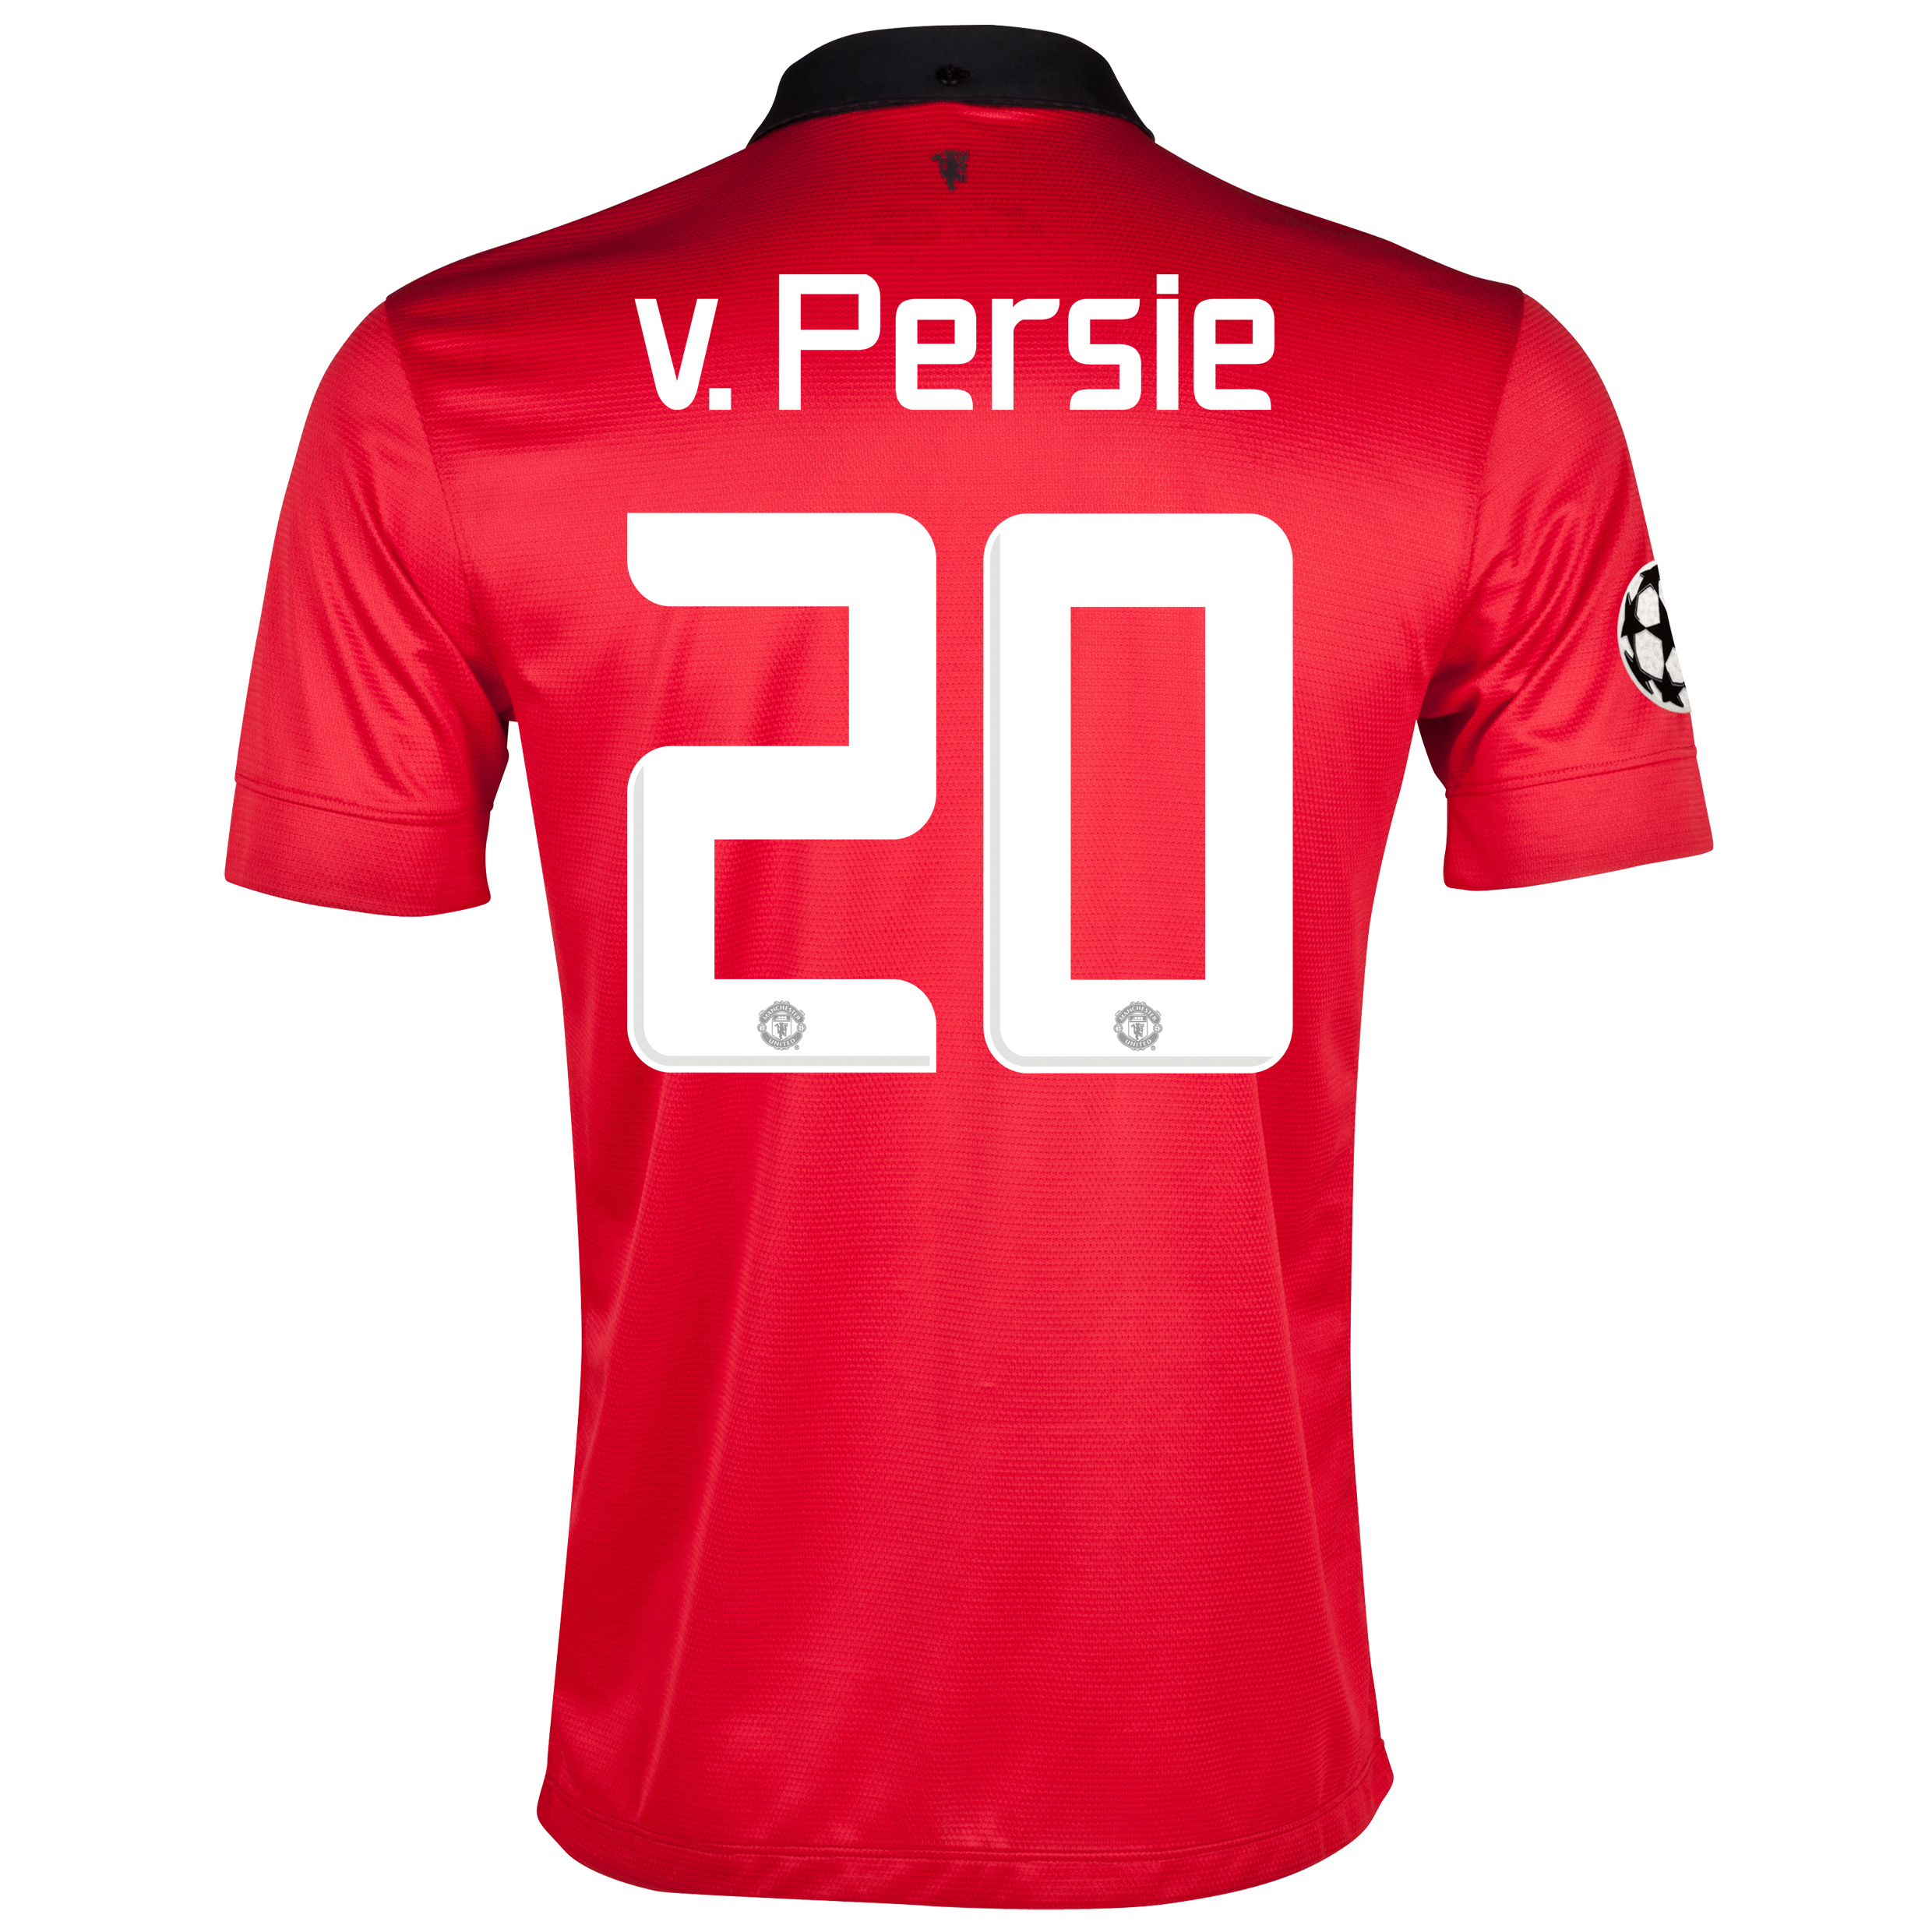 Manchester United UEFA Champions League Home Shirt 2013/14 with v.Persie 20 printing